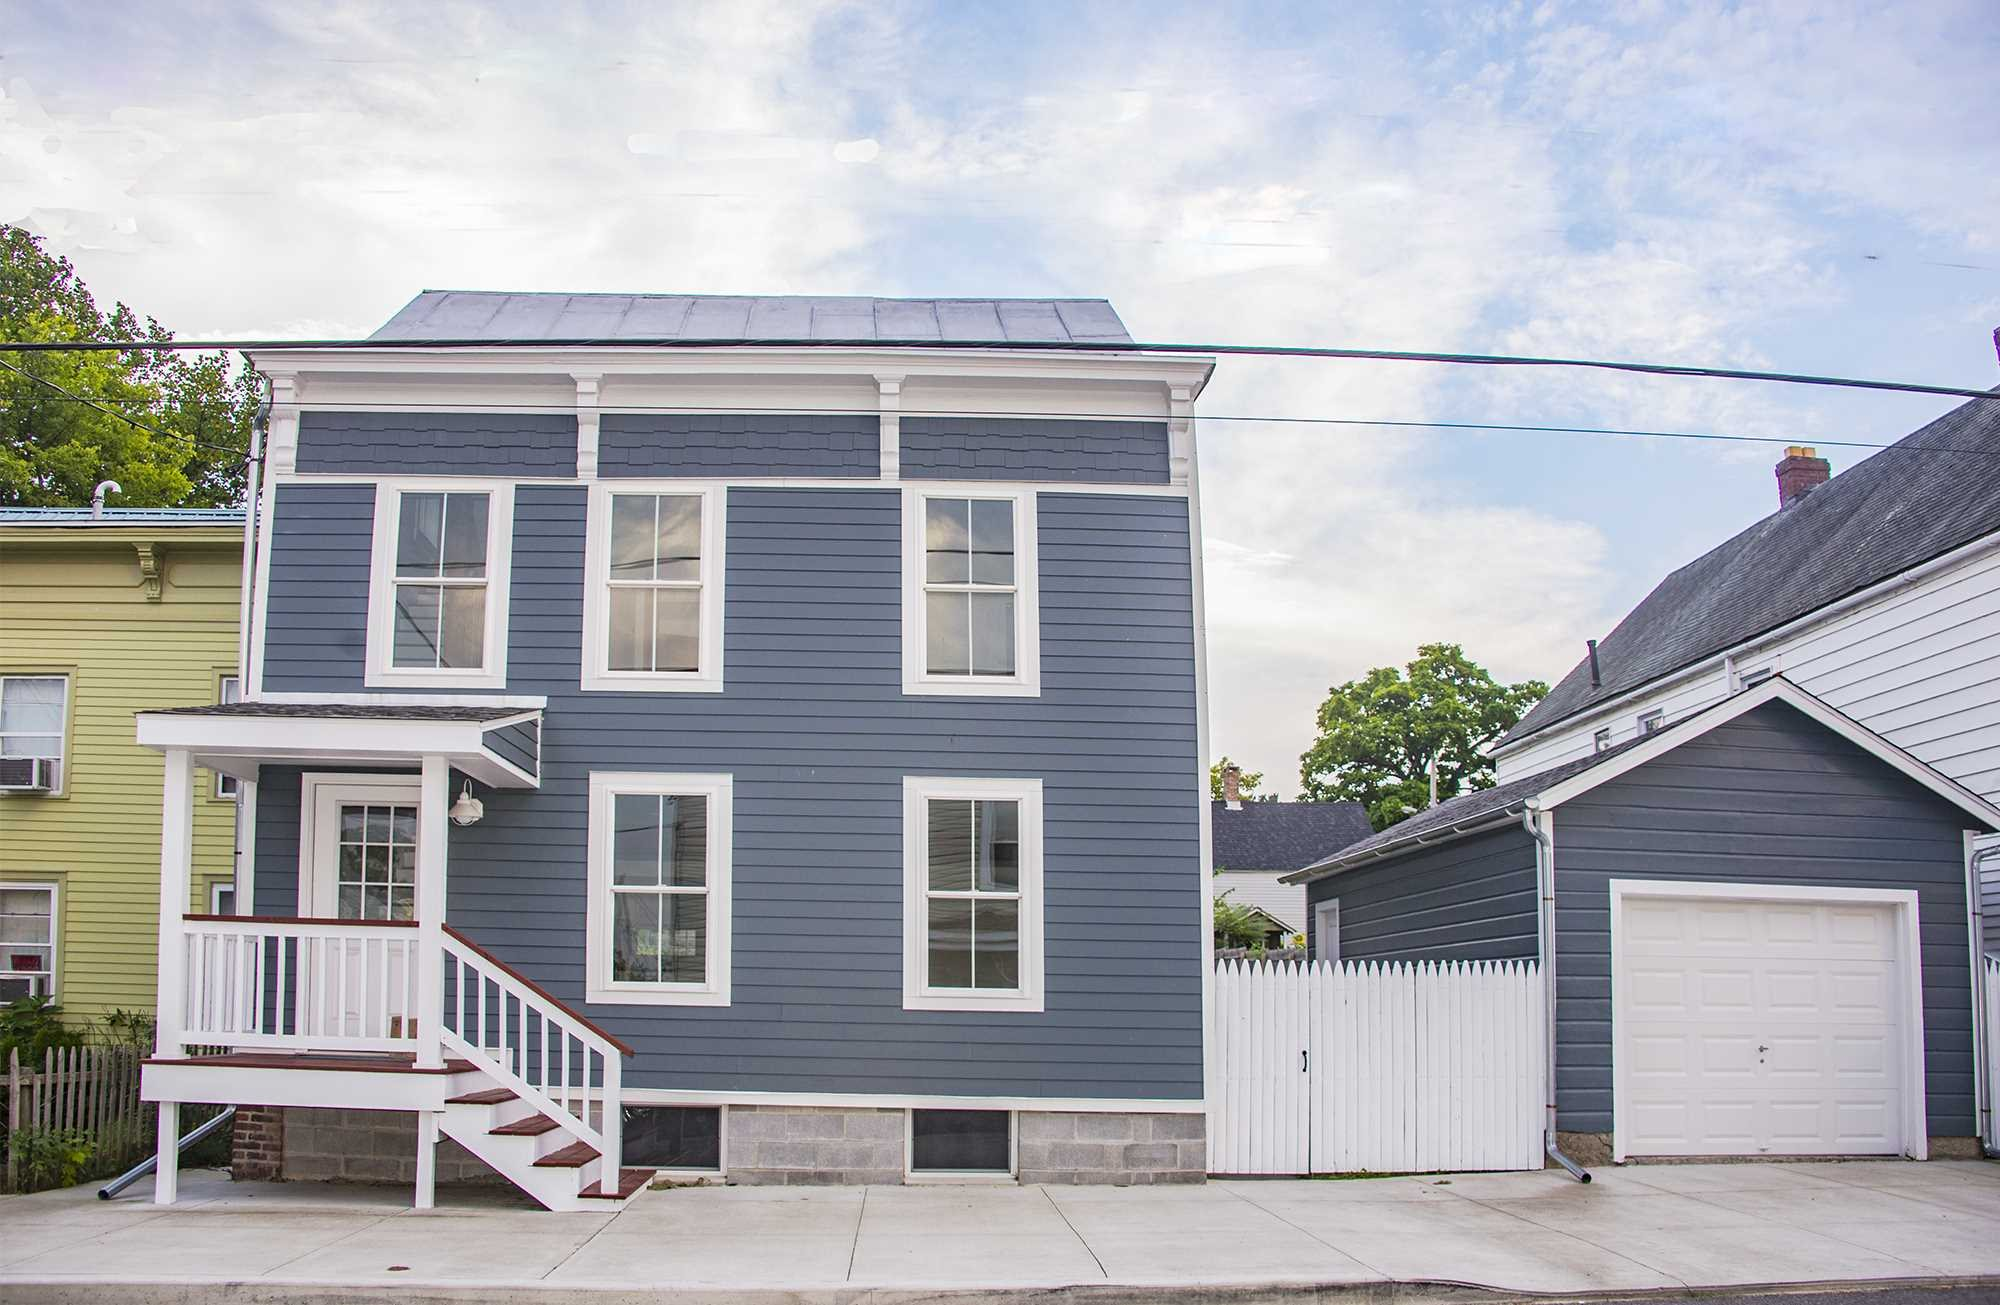 Single Family Home for Sale at 66 THIRD Street 66 THIRD Street Hudson, New York 12534 United States